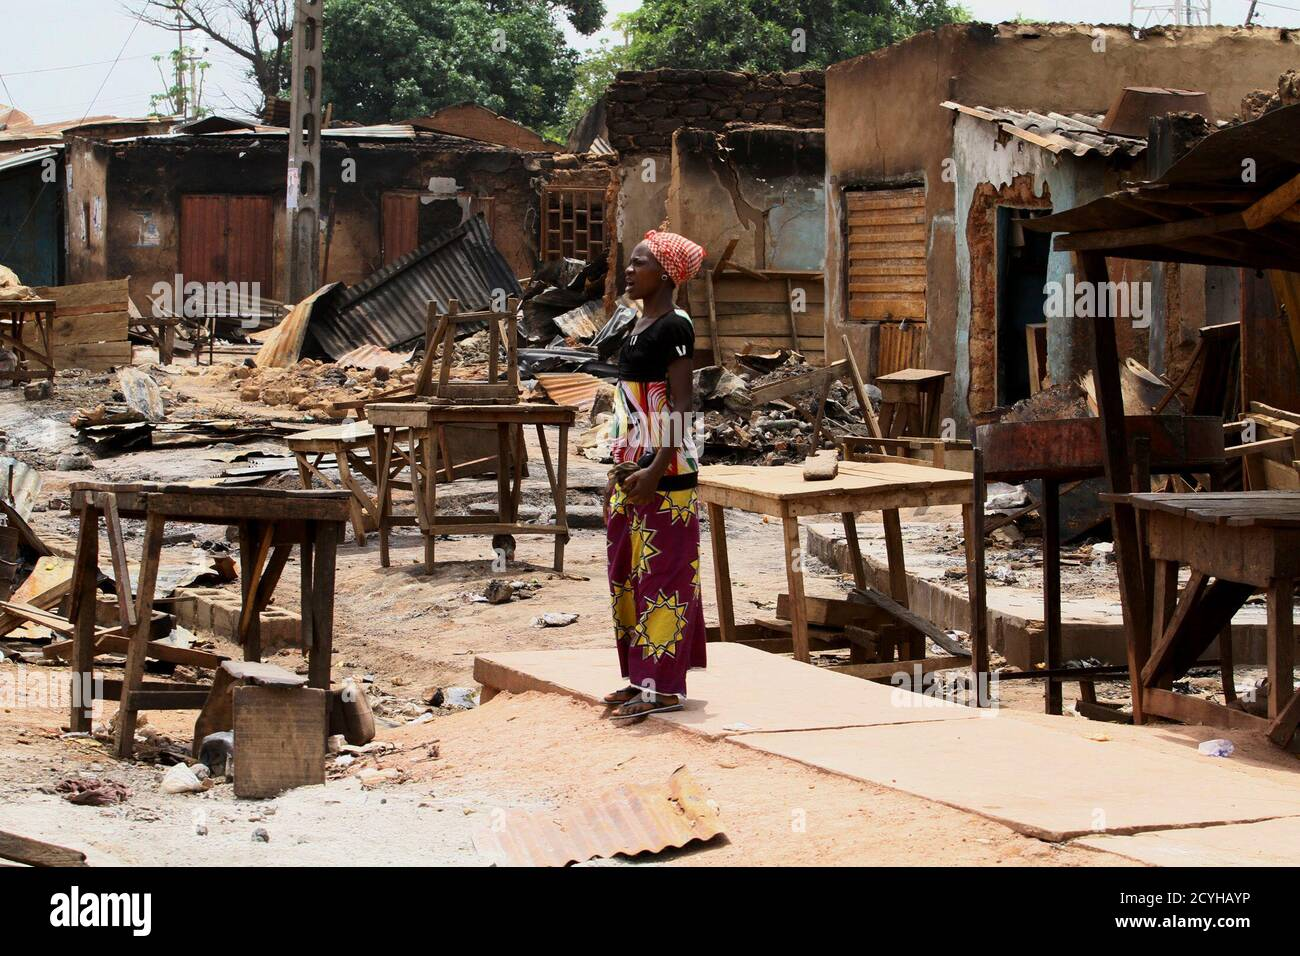 A woman stands in front of burnt buildings in Kachia village, where violence erupted last week, in Nigeria's northern state of Kaduna April 28, 2011. Voters trickled out to polling stations on Thursday in two states in northern Nigeria where rioting killed hundreds last week, under the watchful eye of policemen on horseback and soldiers manning barricades. REUTERS/Afolabi Sotunde (NIGERIA - Tags: CIVIL UNREST ELECTIONS POLITICS) Foto de stock